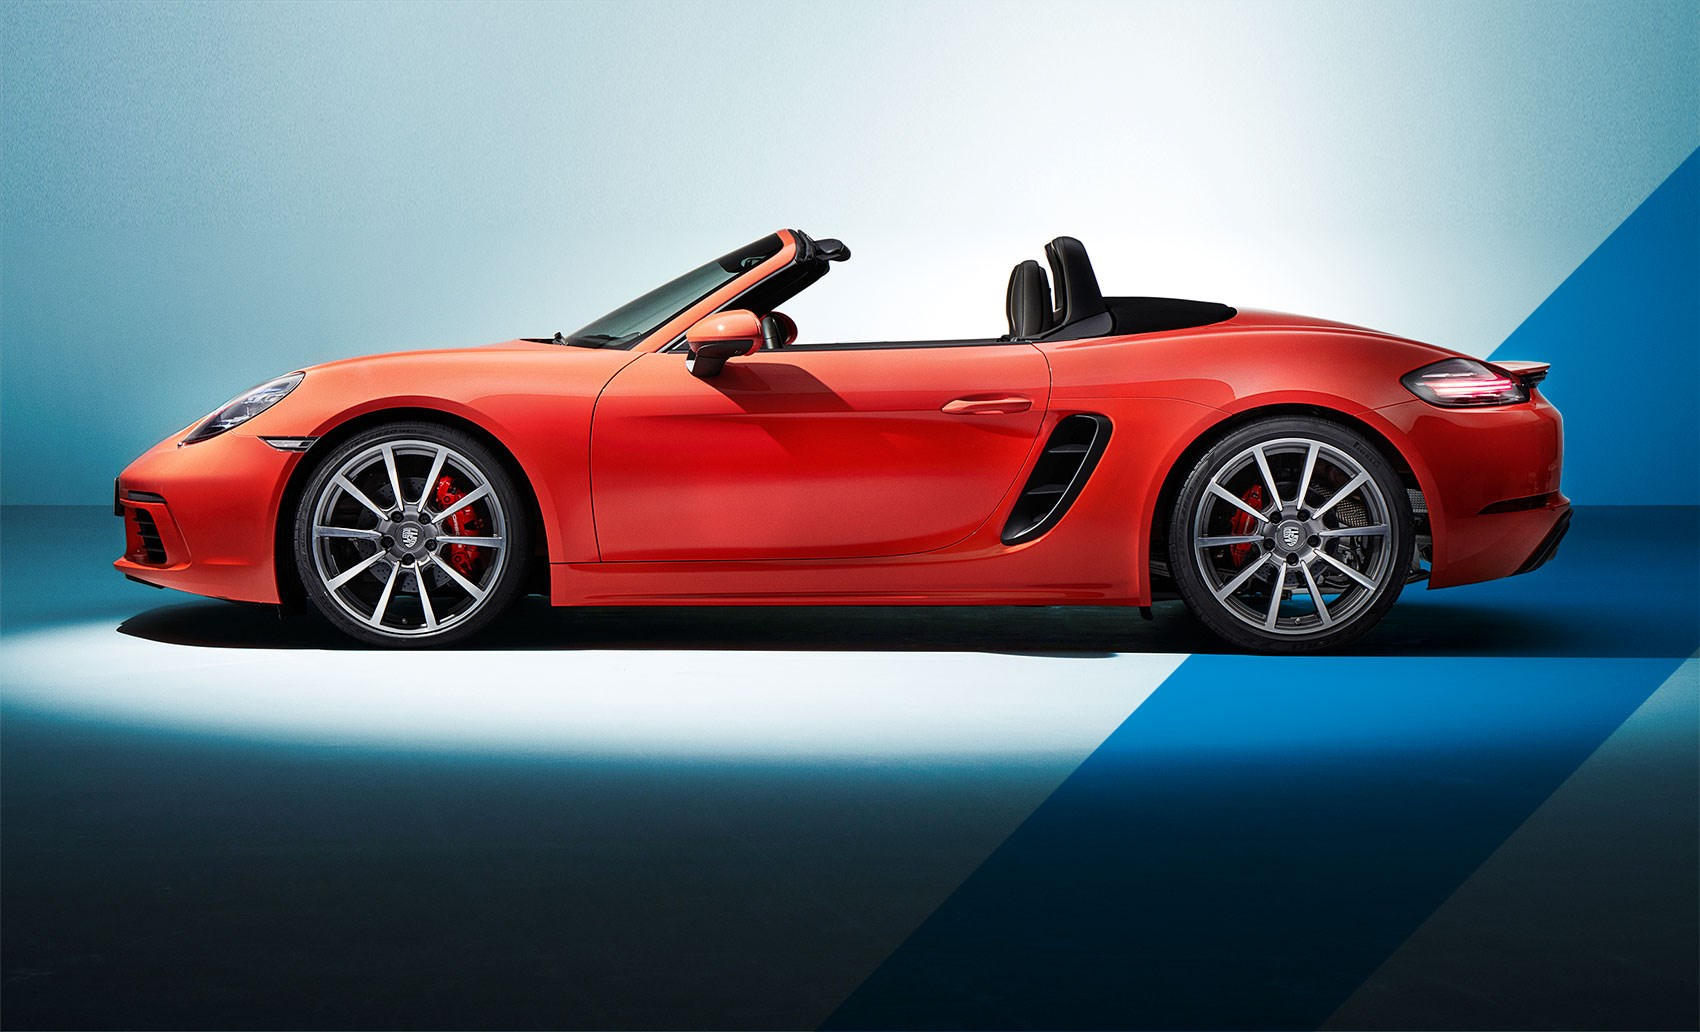 Love In The Time Of Efficiency Porsche 718 Boxster First Ride And Remote Starter Diagram Turbo Four Produces More Torque While At Same Reducing Fuel Consumption By 15